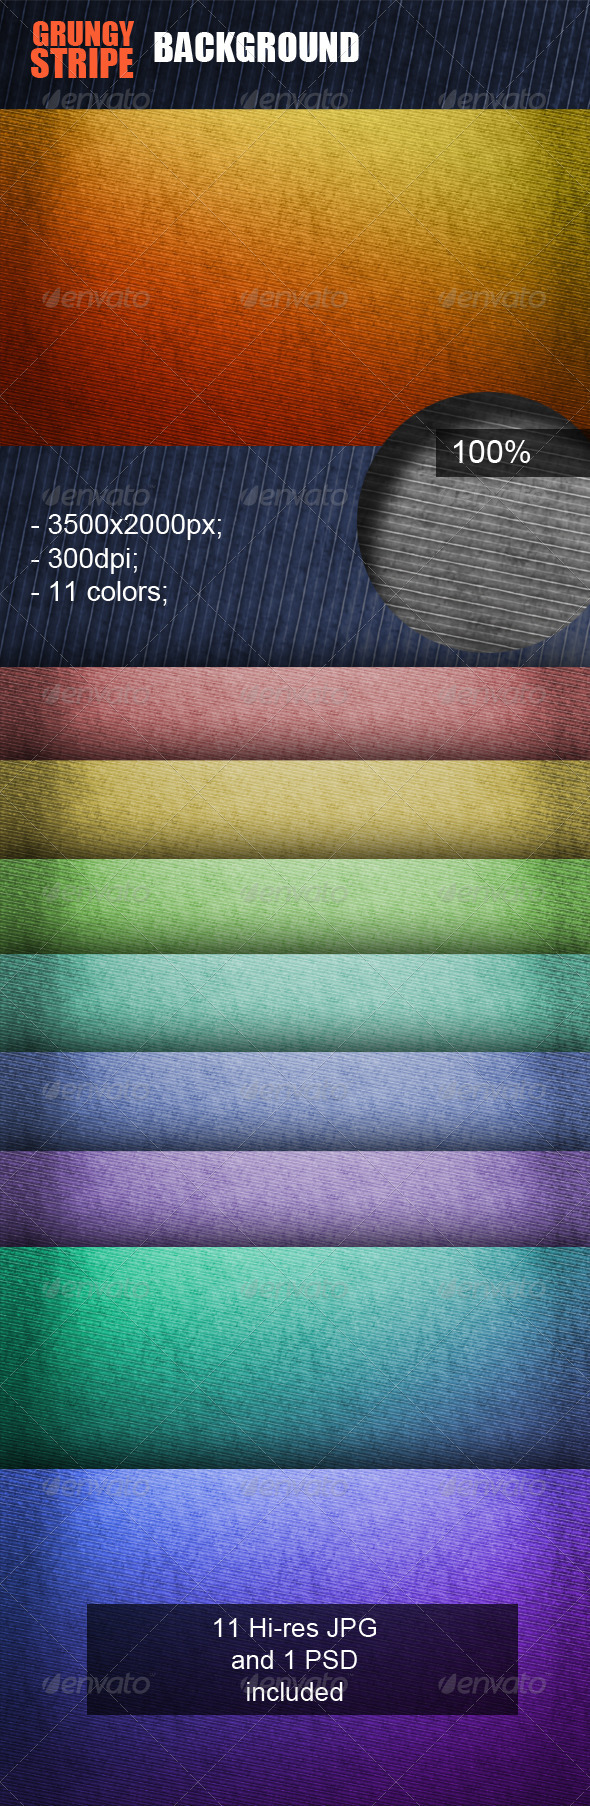 Grungy Stripe Background - Patterns Backgrounds